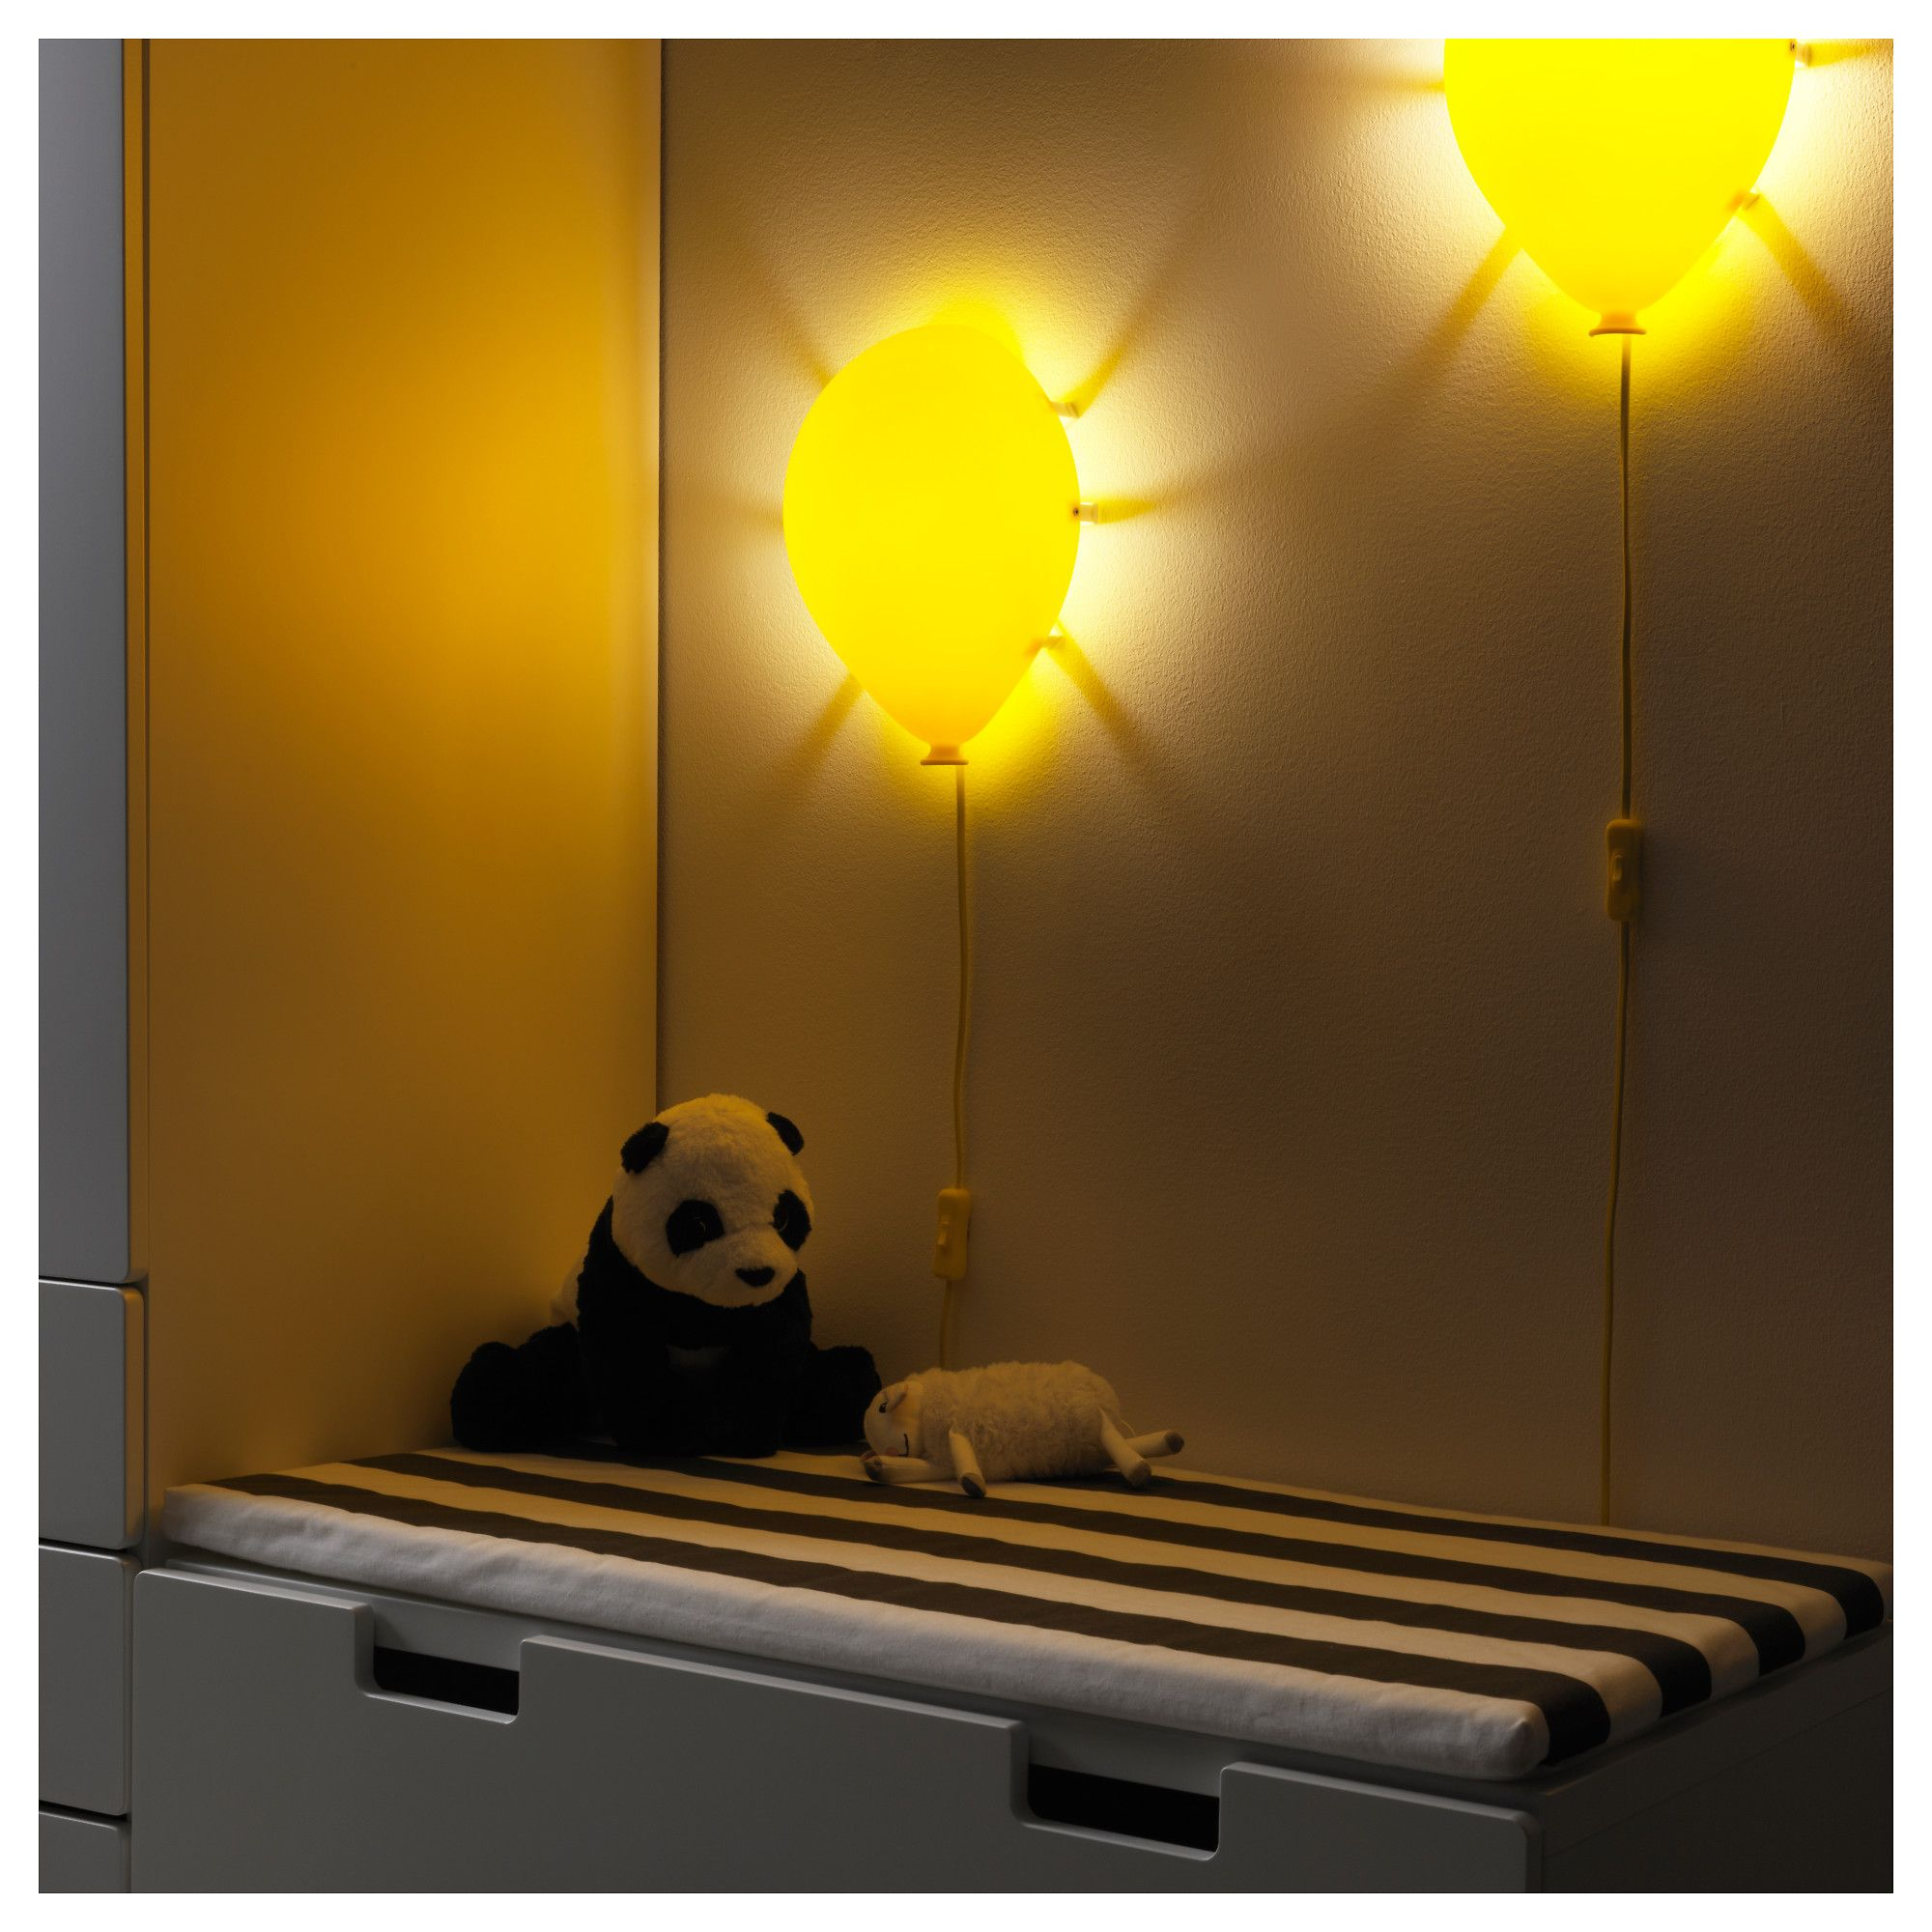 Shop for Furniture, Home Accessories & More Ikea wall